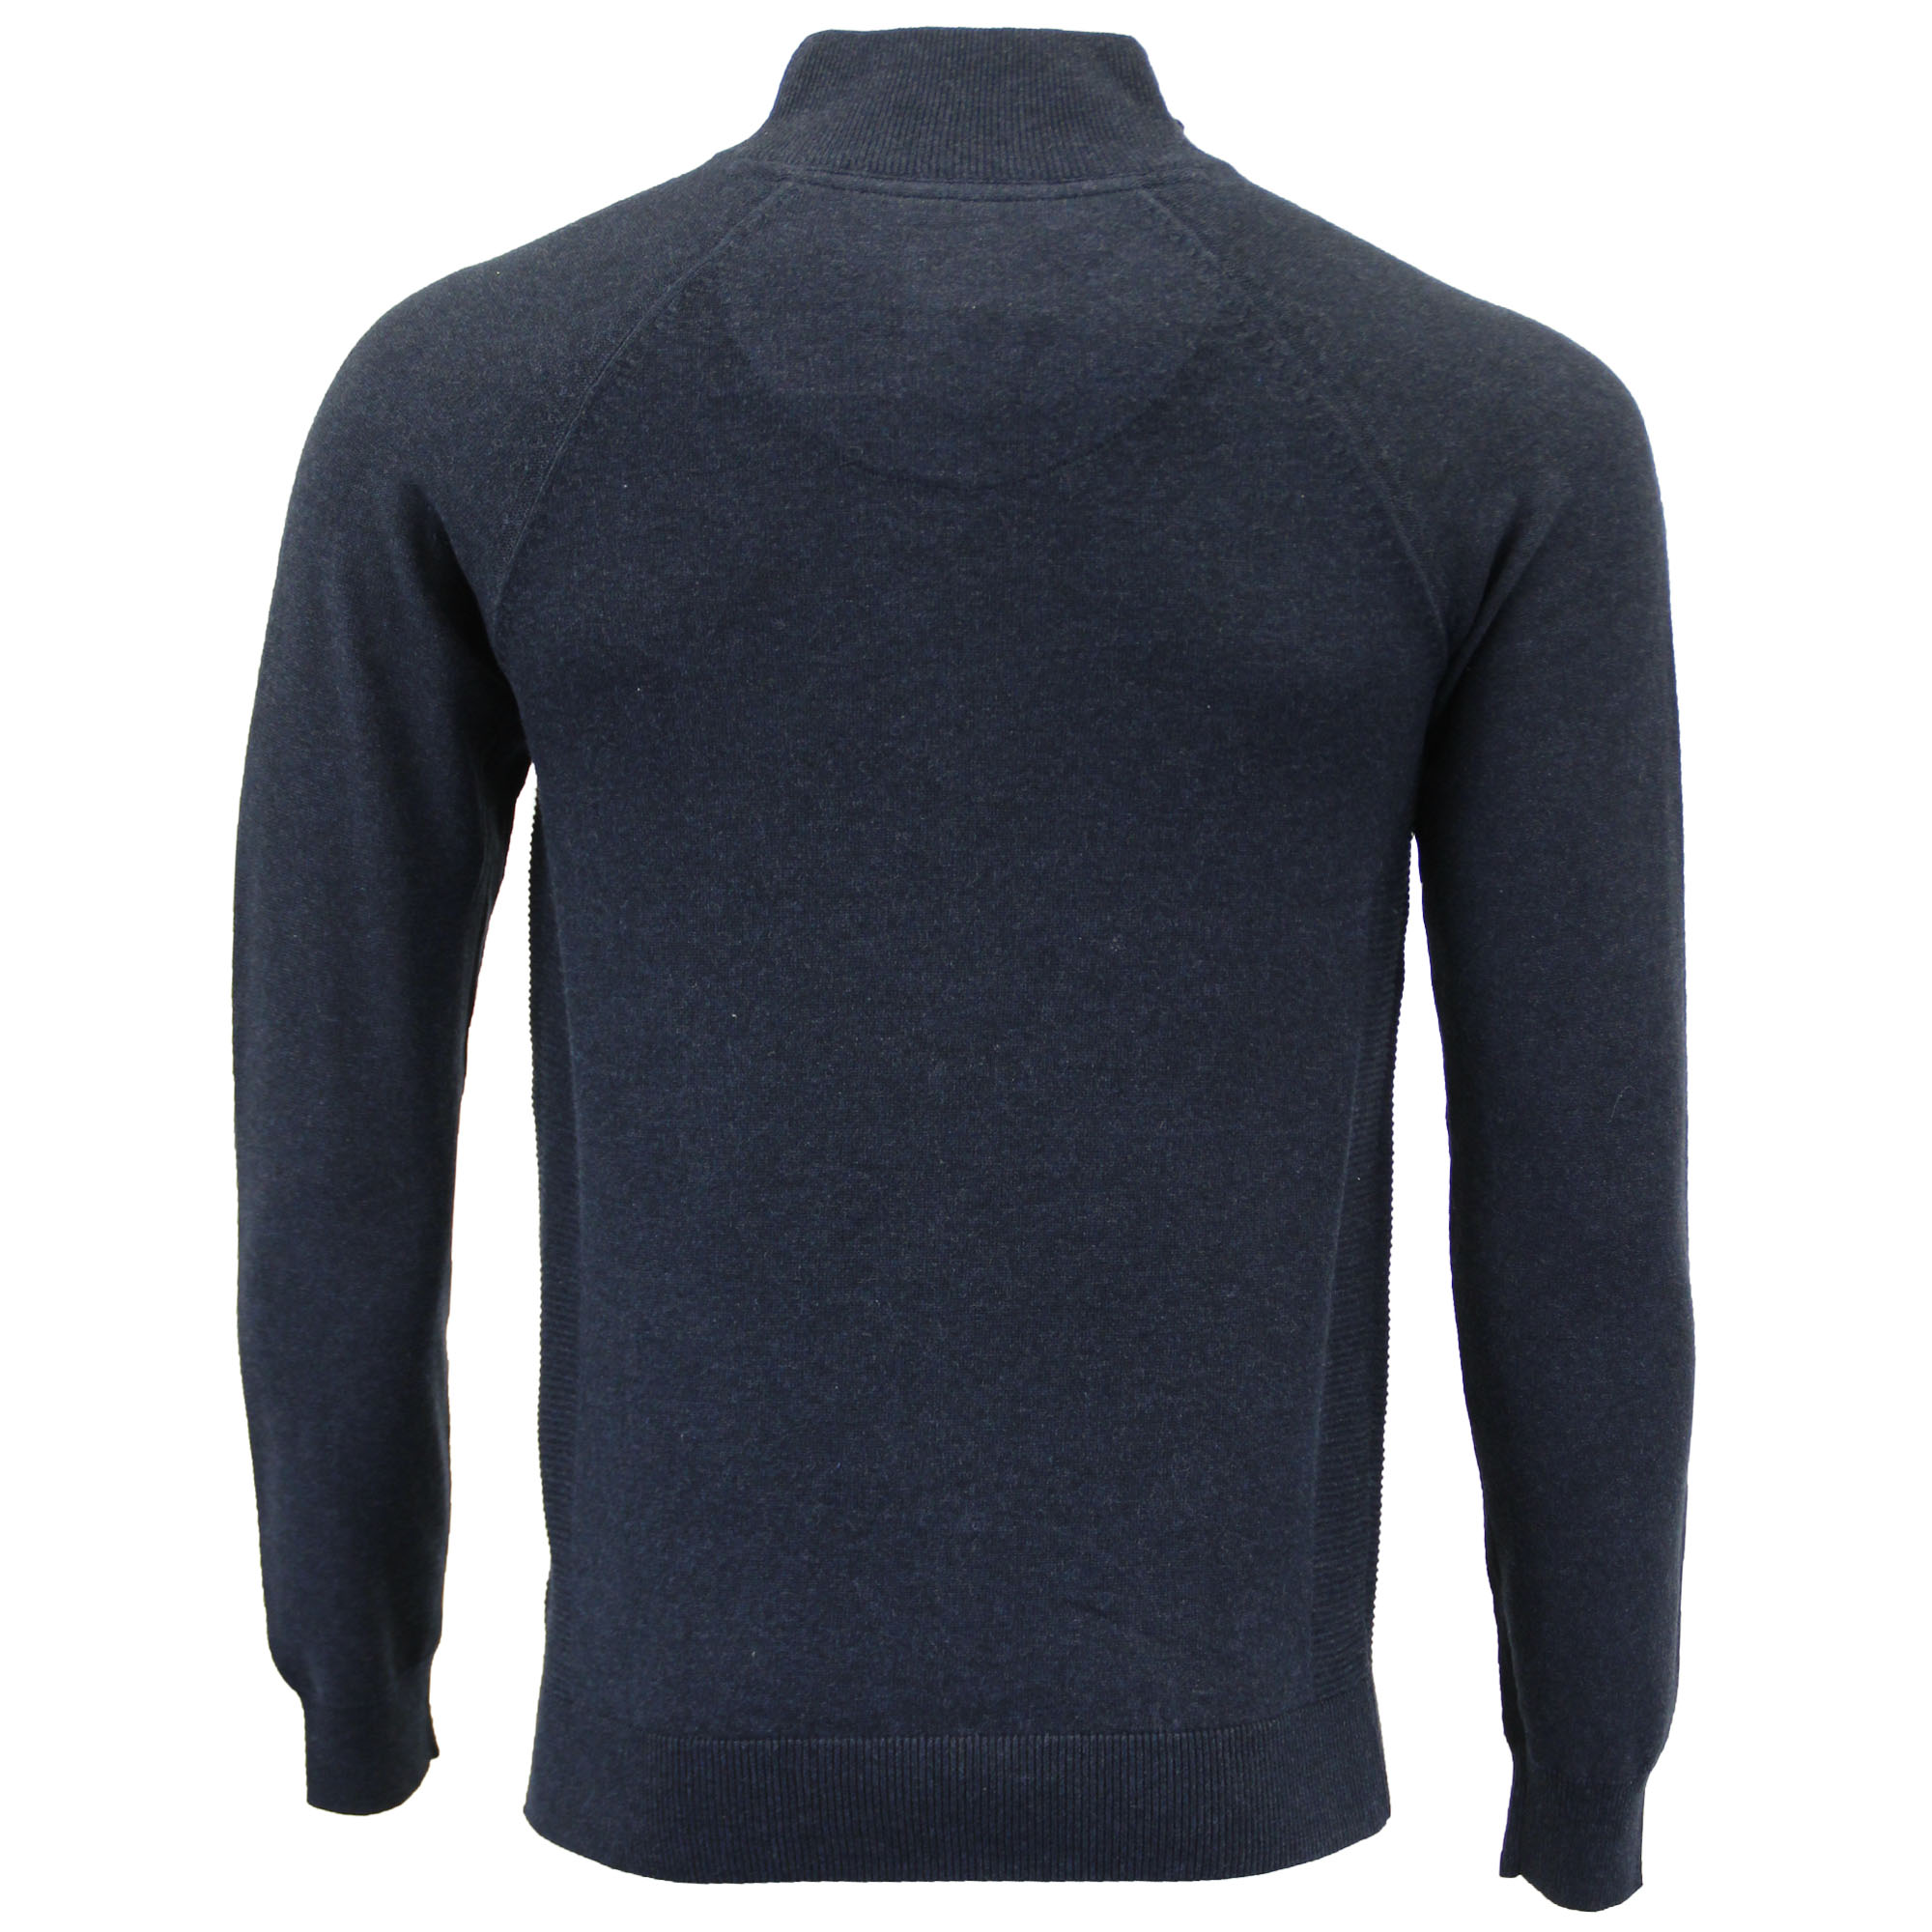 Mens-Jumper-Threadbare-Knitted-Cotton-Sweater-Half-Zip-Pullover-Top-Winter-New thumbnail 25